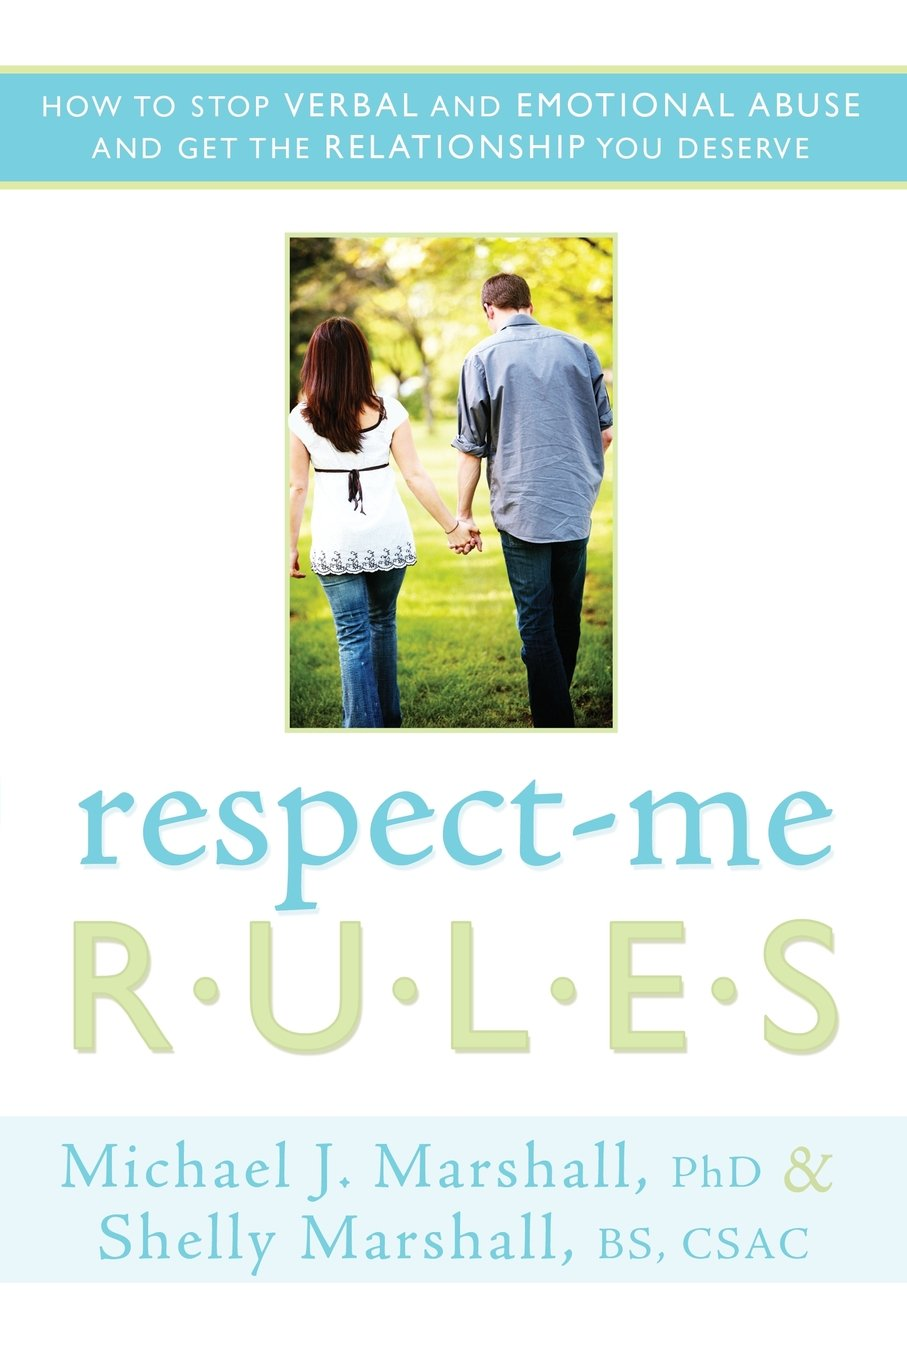 Respect-Me Rules Text fb2 book